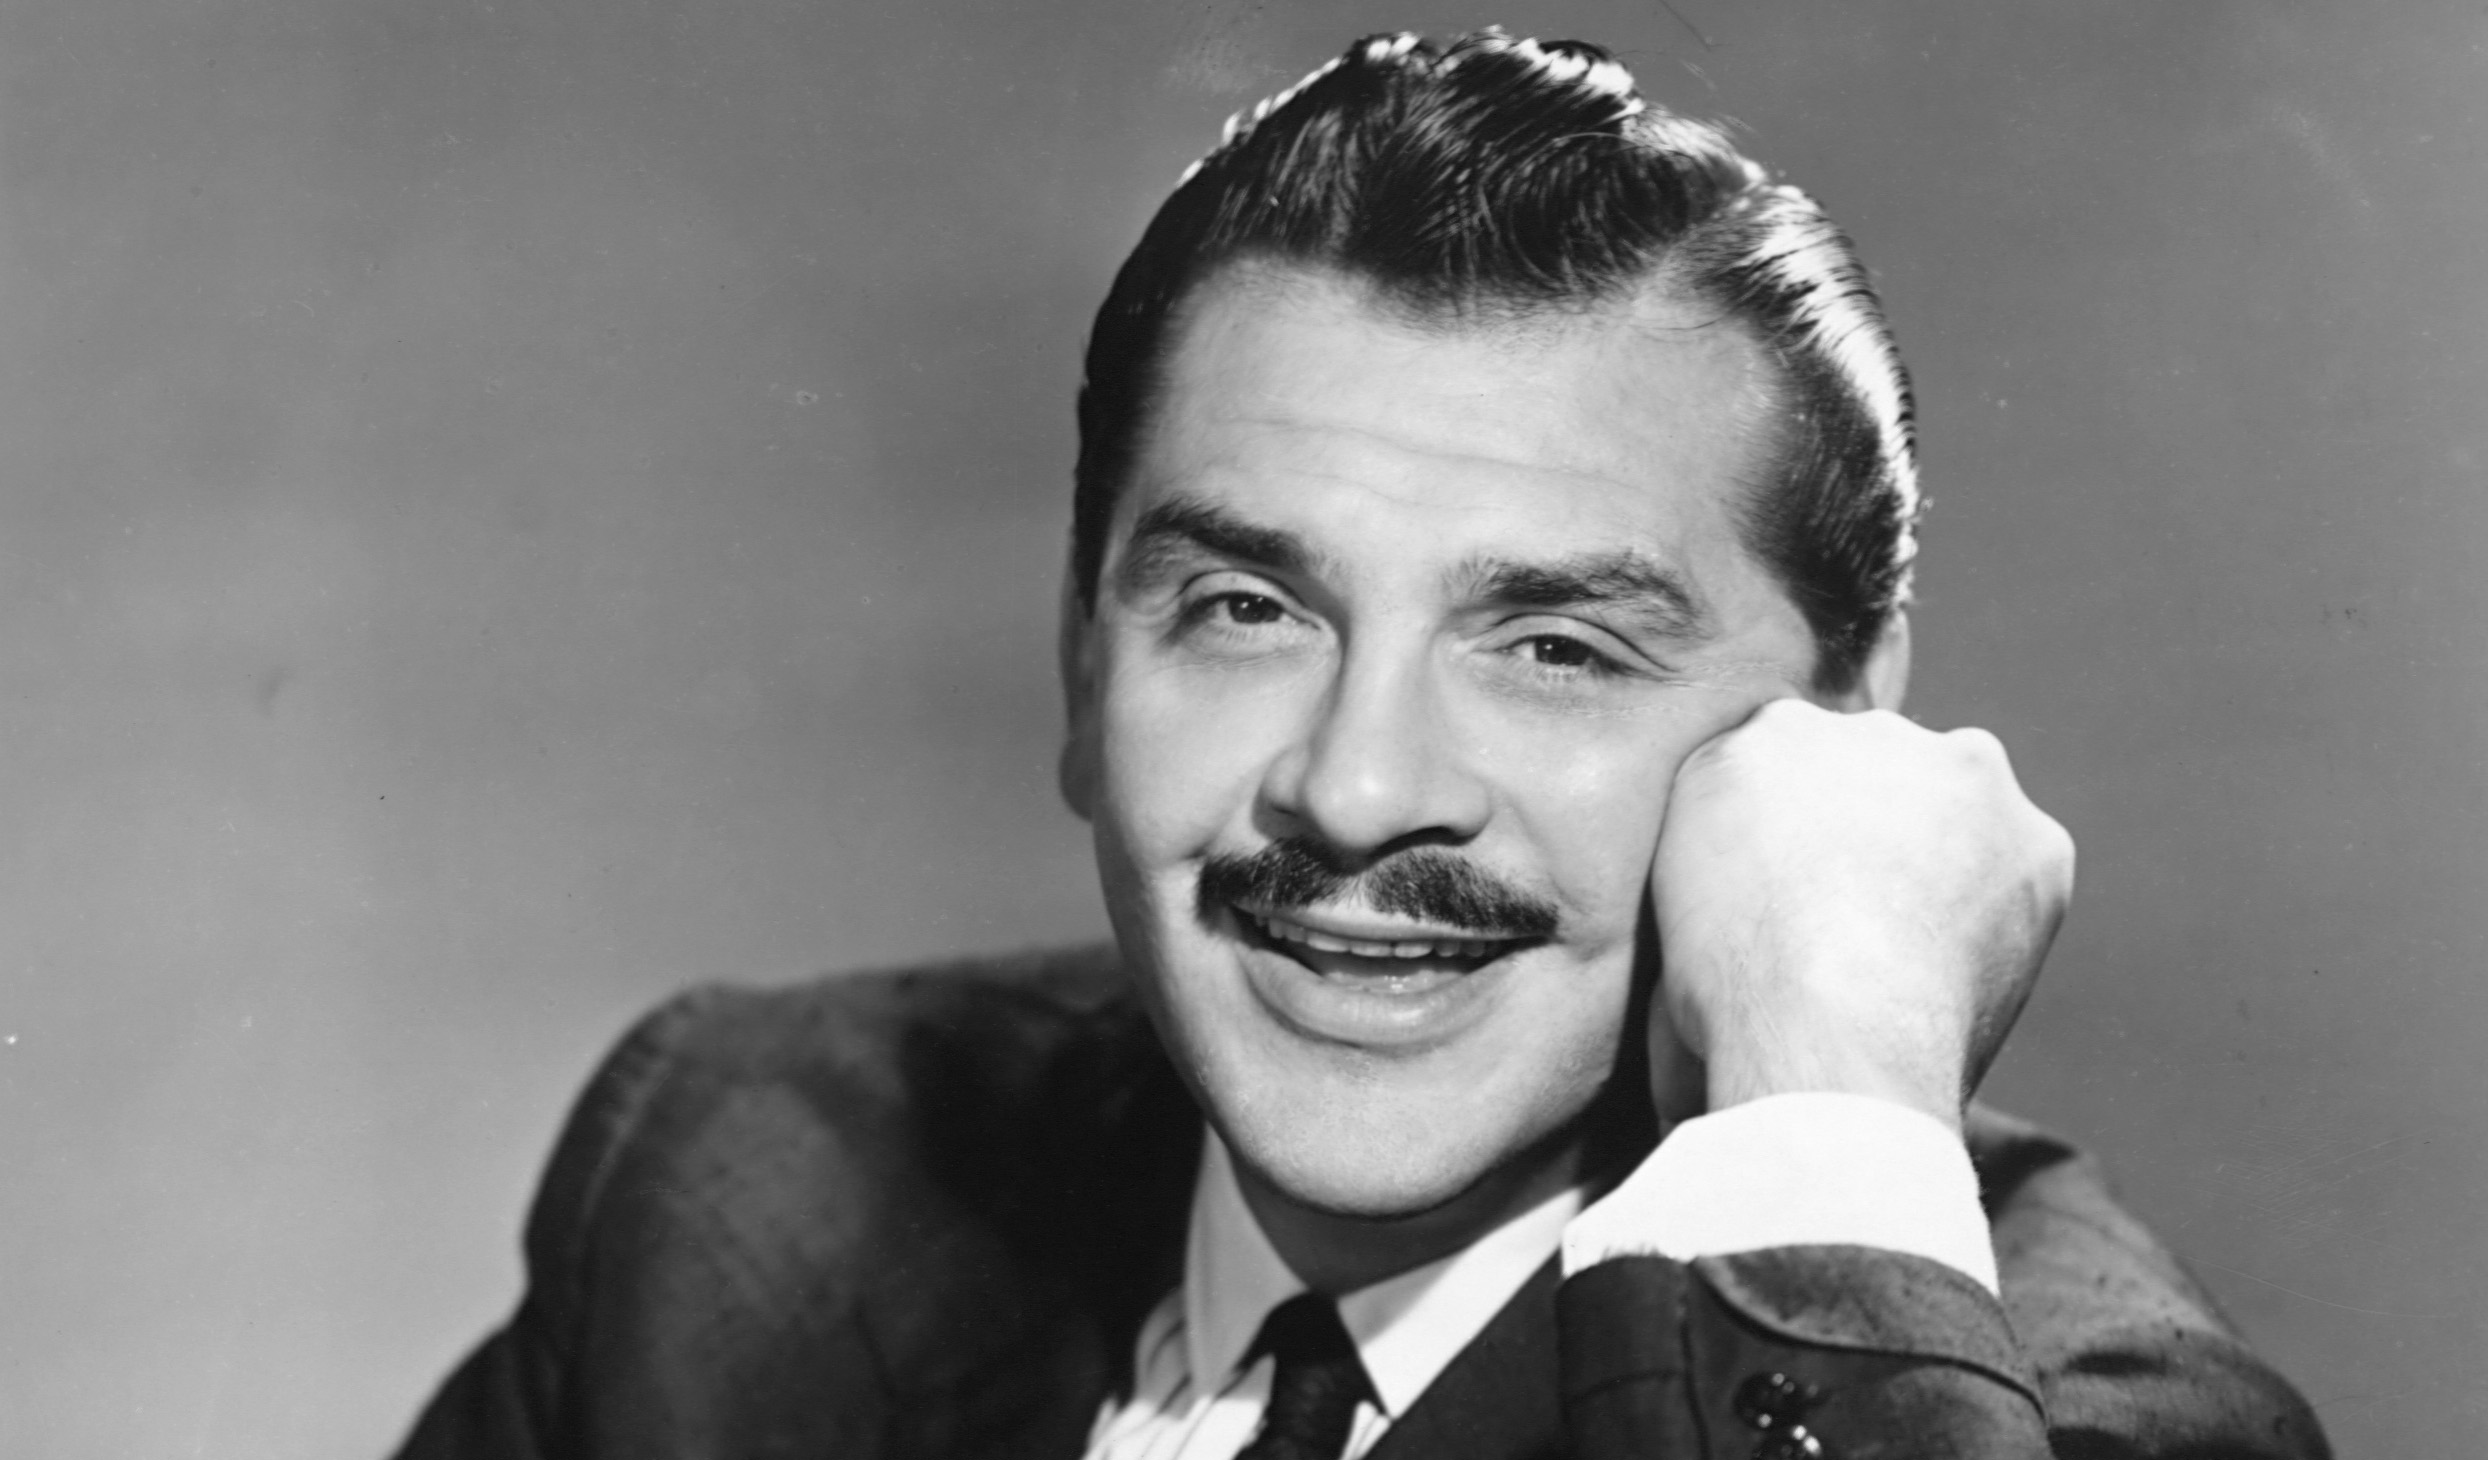 Ernie Kovacs Used Comedy To Deal With His Hard Life (Exclusive)